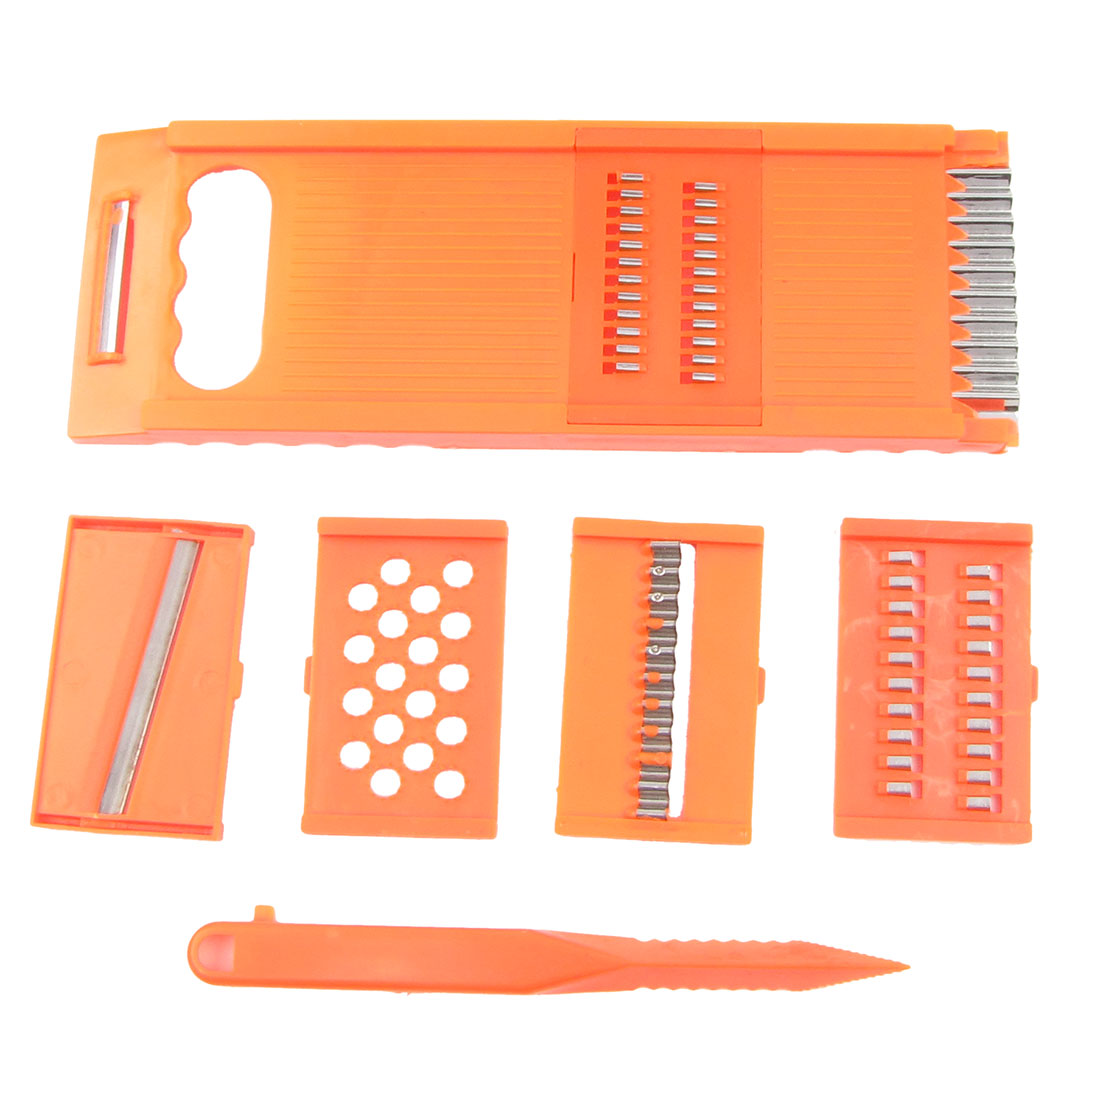 Sharp Metal Cutter Orange Red Plastic Frame Fruit Vegetable Grater Peeler